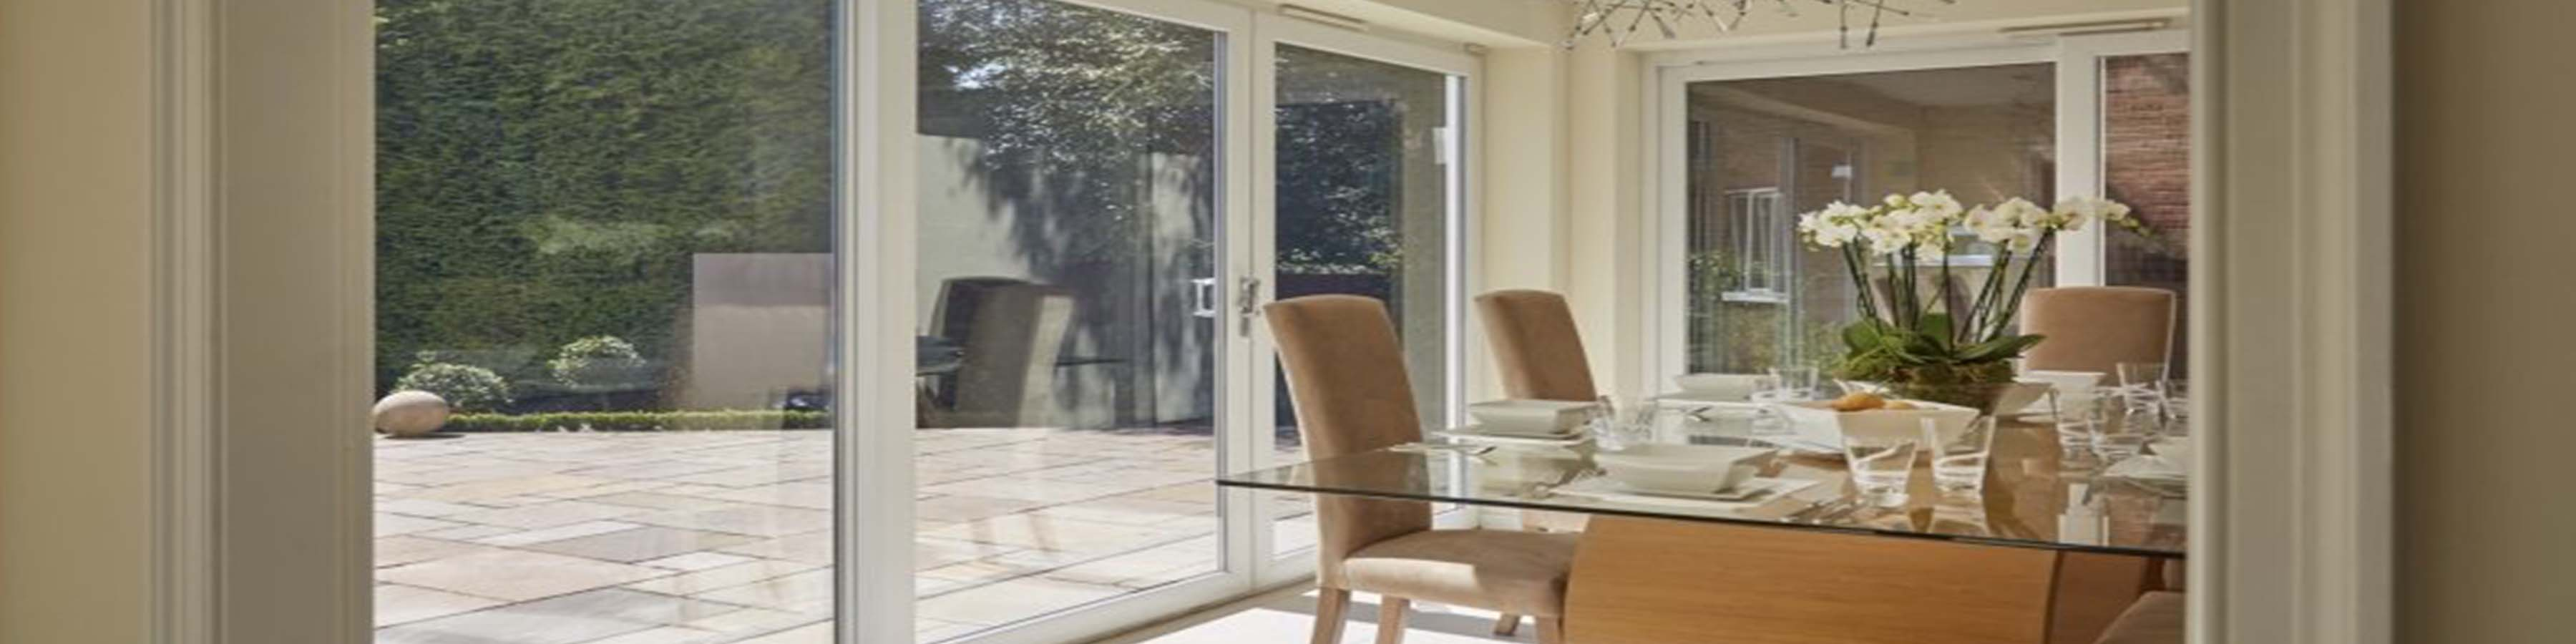 Bradford uPVC Windows in-line sliding Patio Doors are specially designed to provide a luxurious gateway to your garden or conservatory without taking up ... & Patio Doors | Bradford uPVC Windows